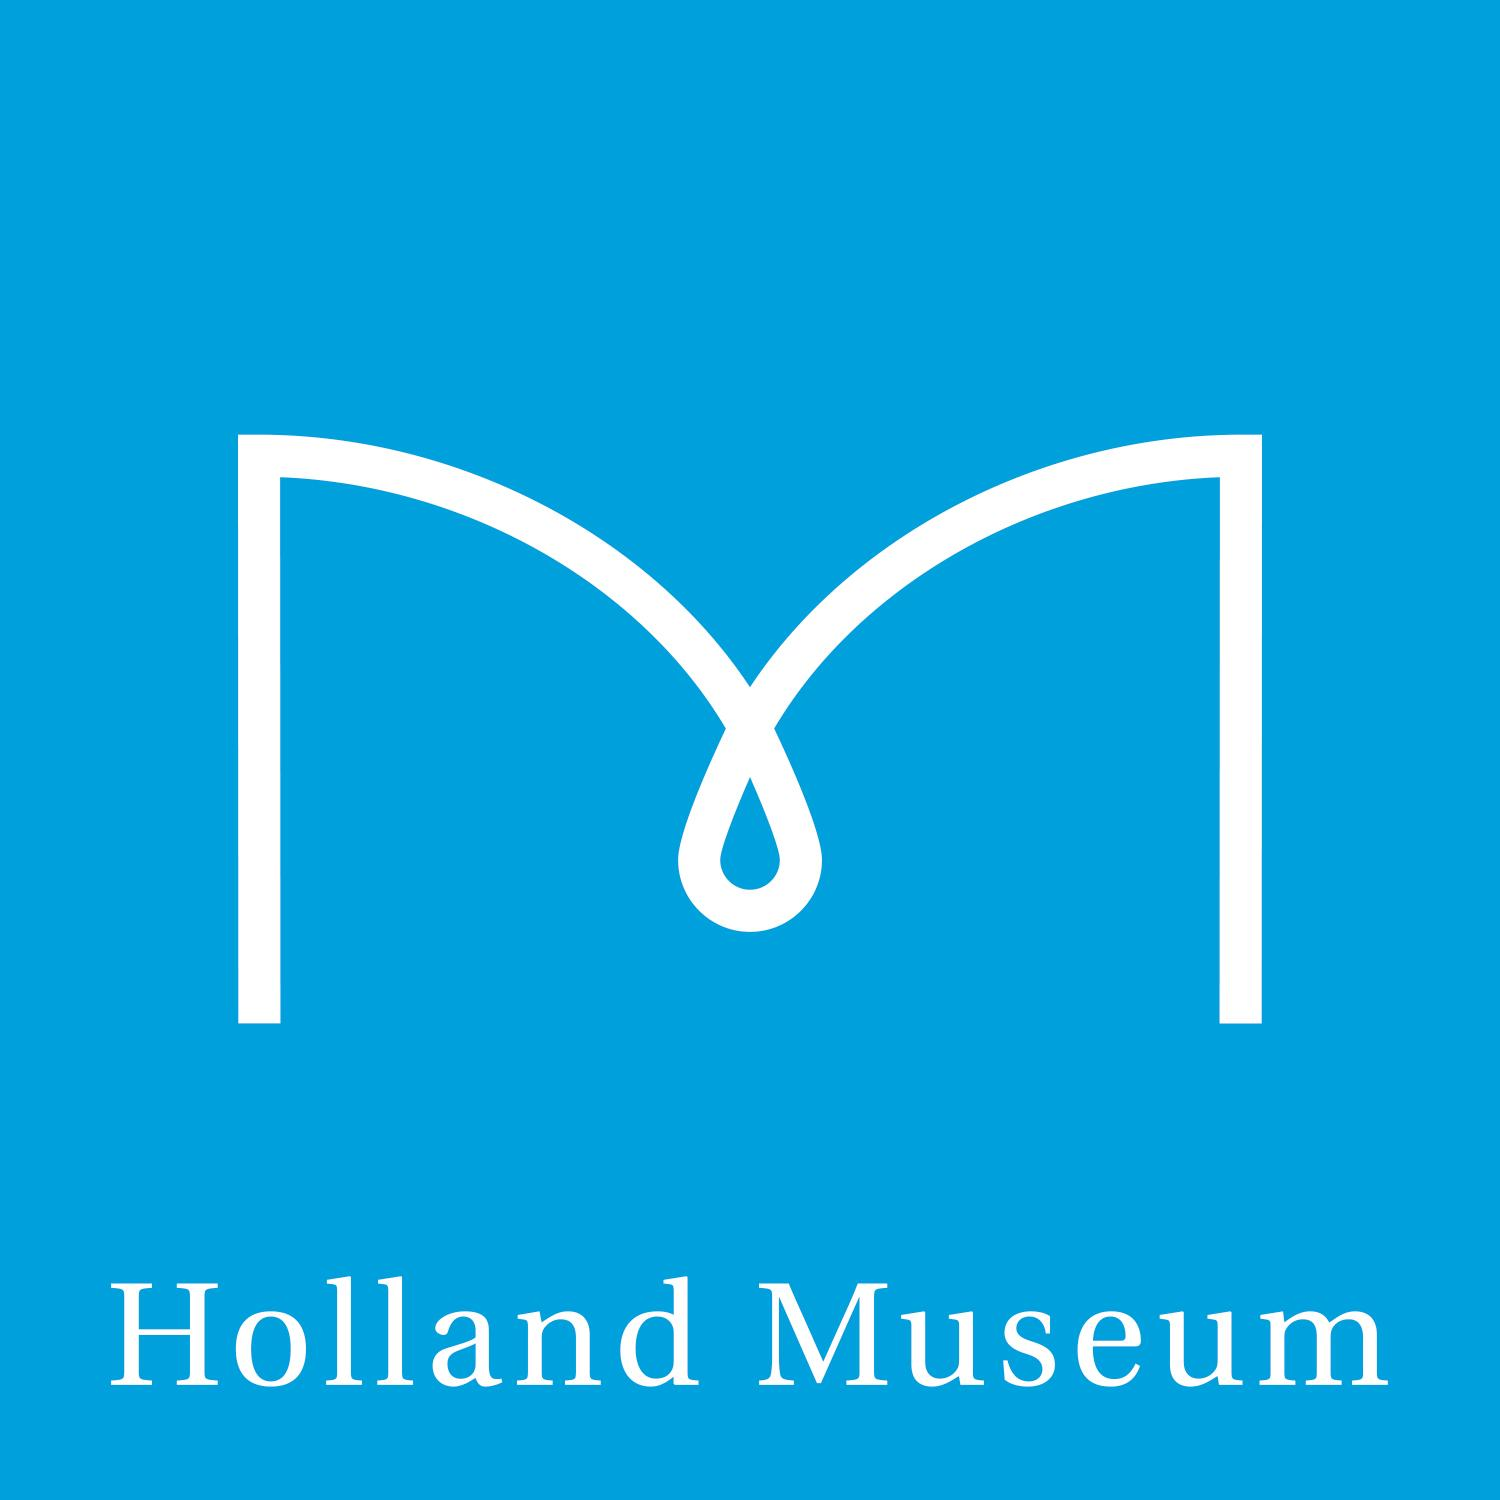 Holland Museum - Holland, MI - Museums & Attractions